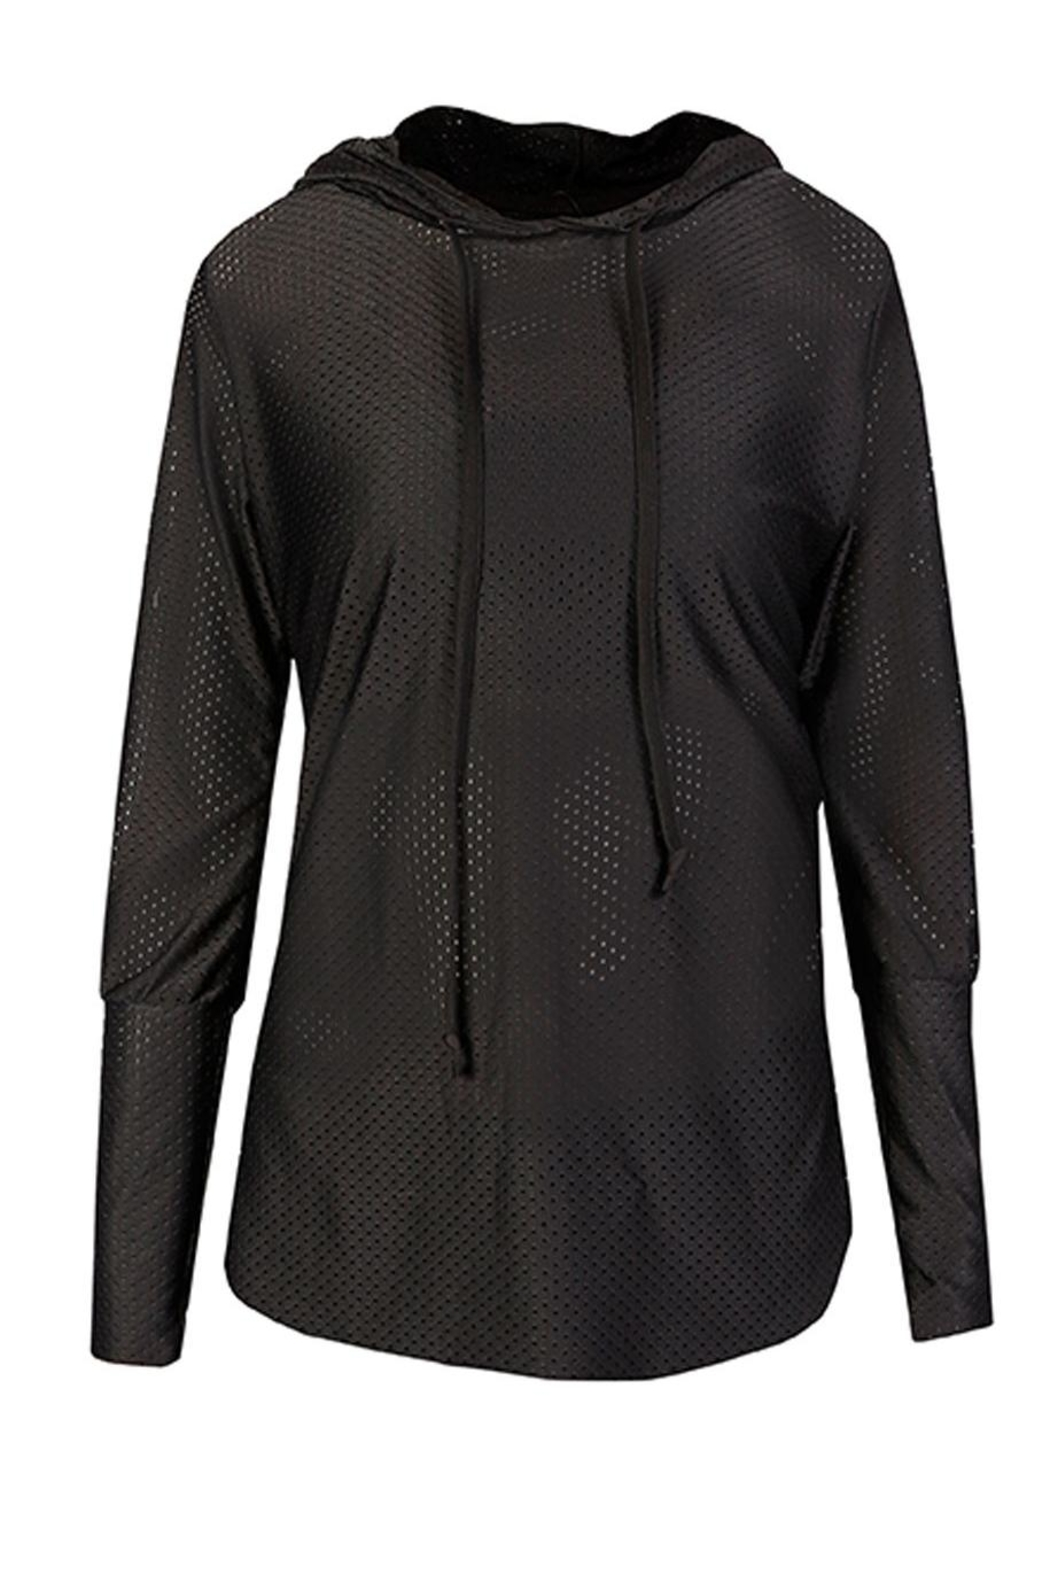 Maaji Waves Mesh-Black Hoodie - Side Cropped Image